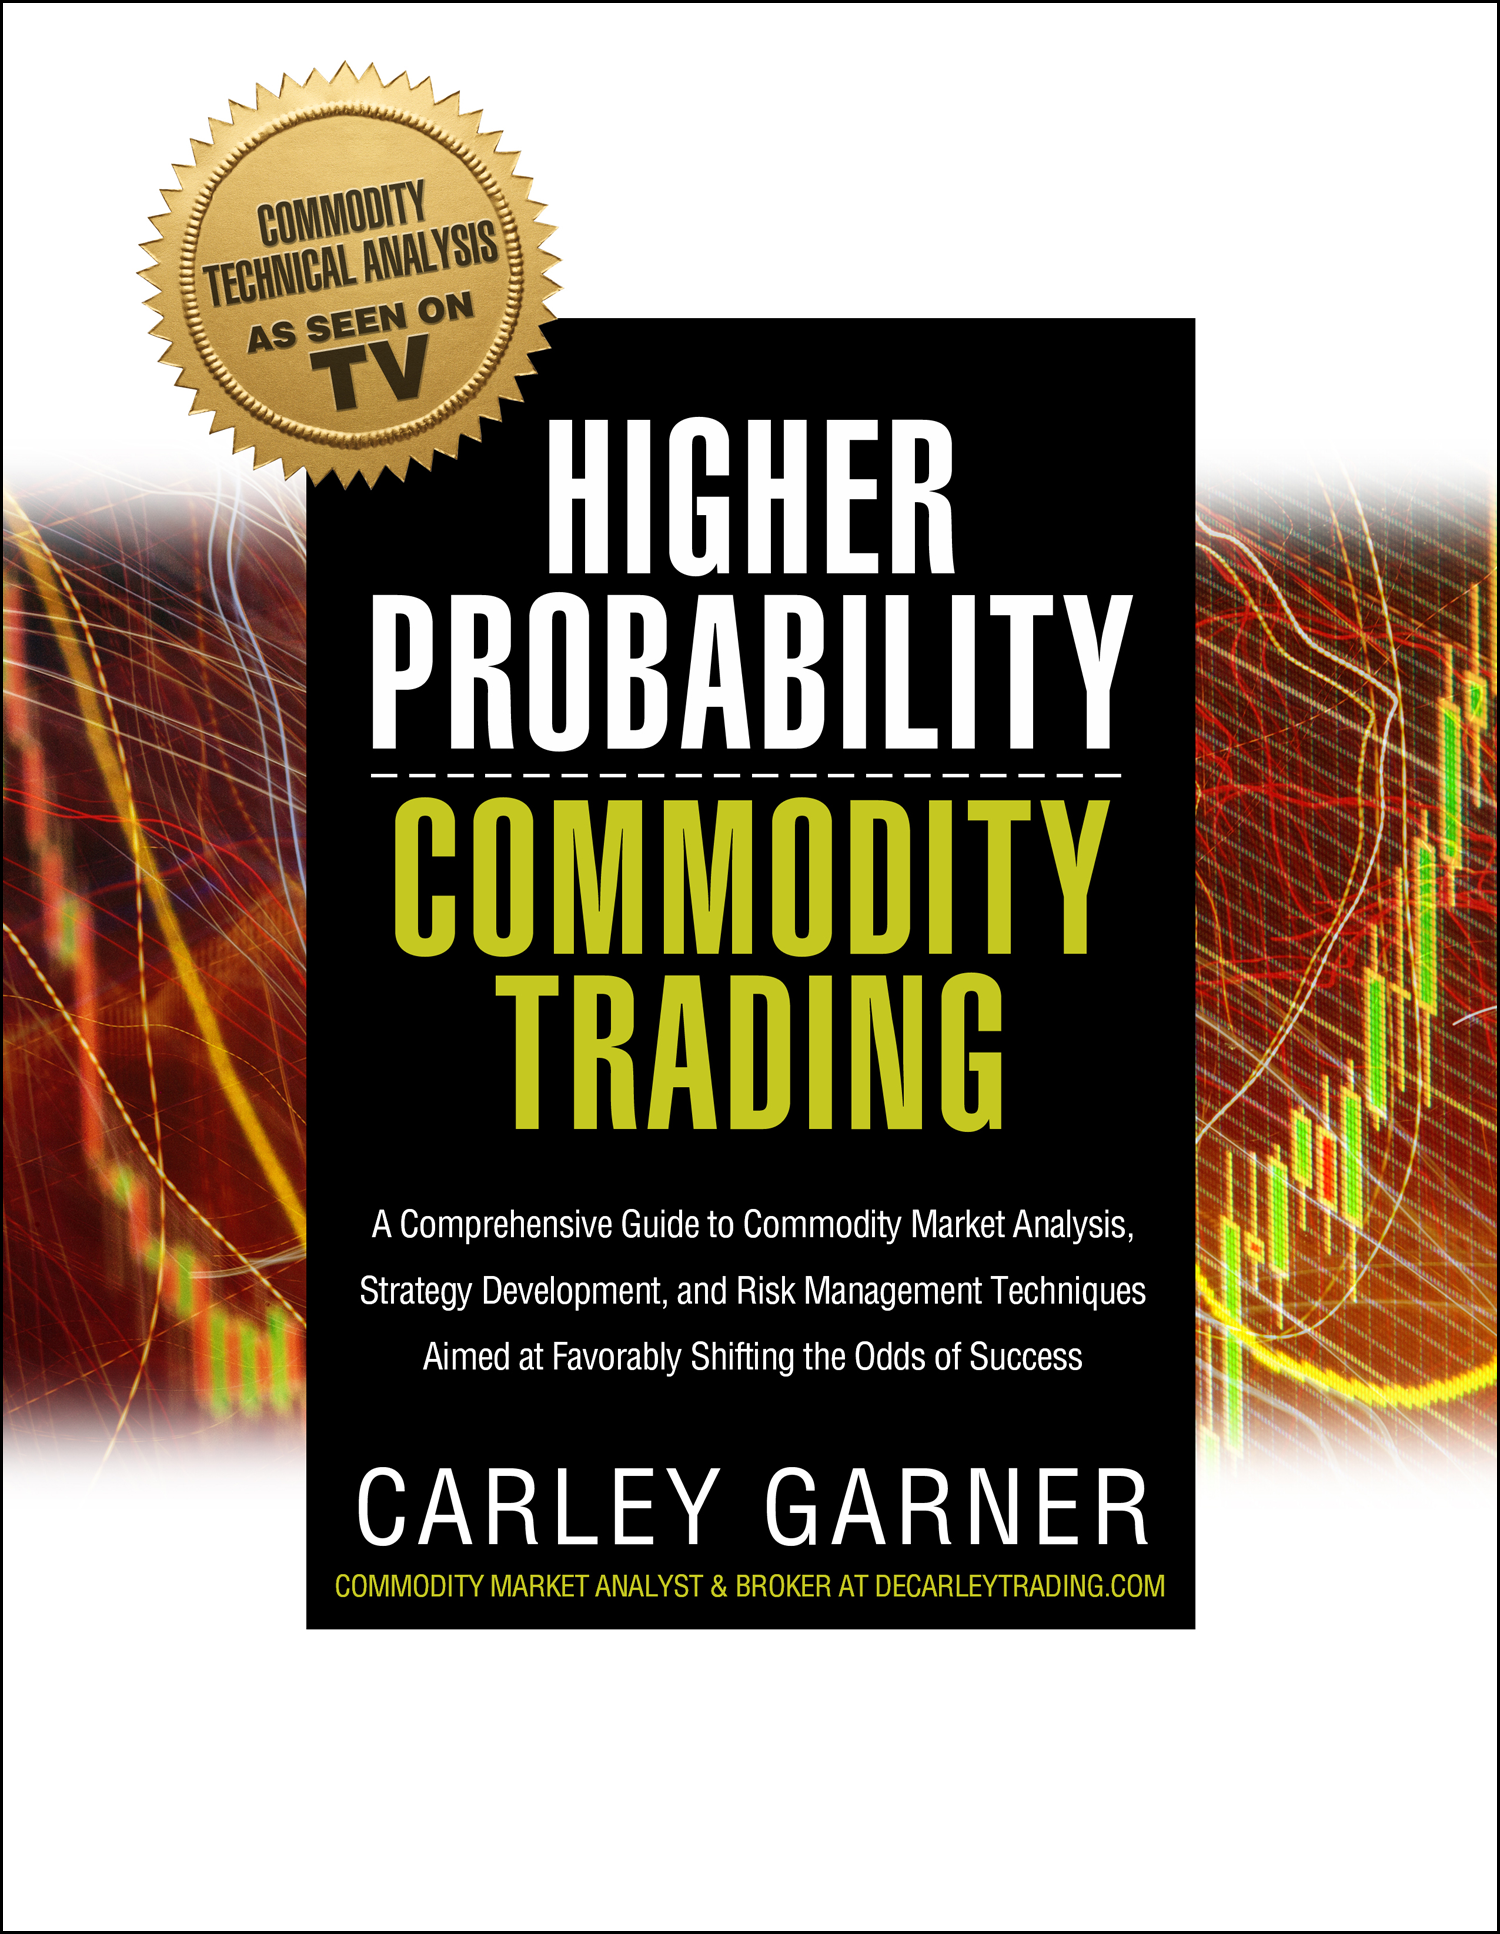 Higher Probability Commodity Trading Cover 3